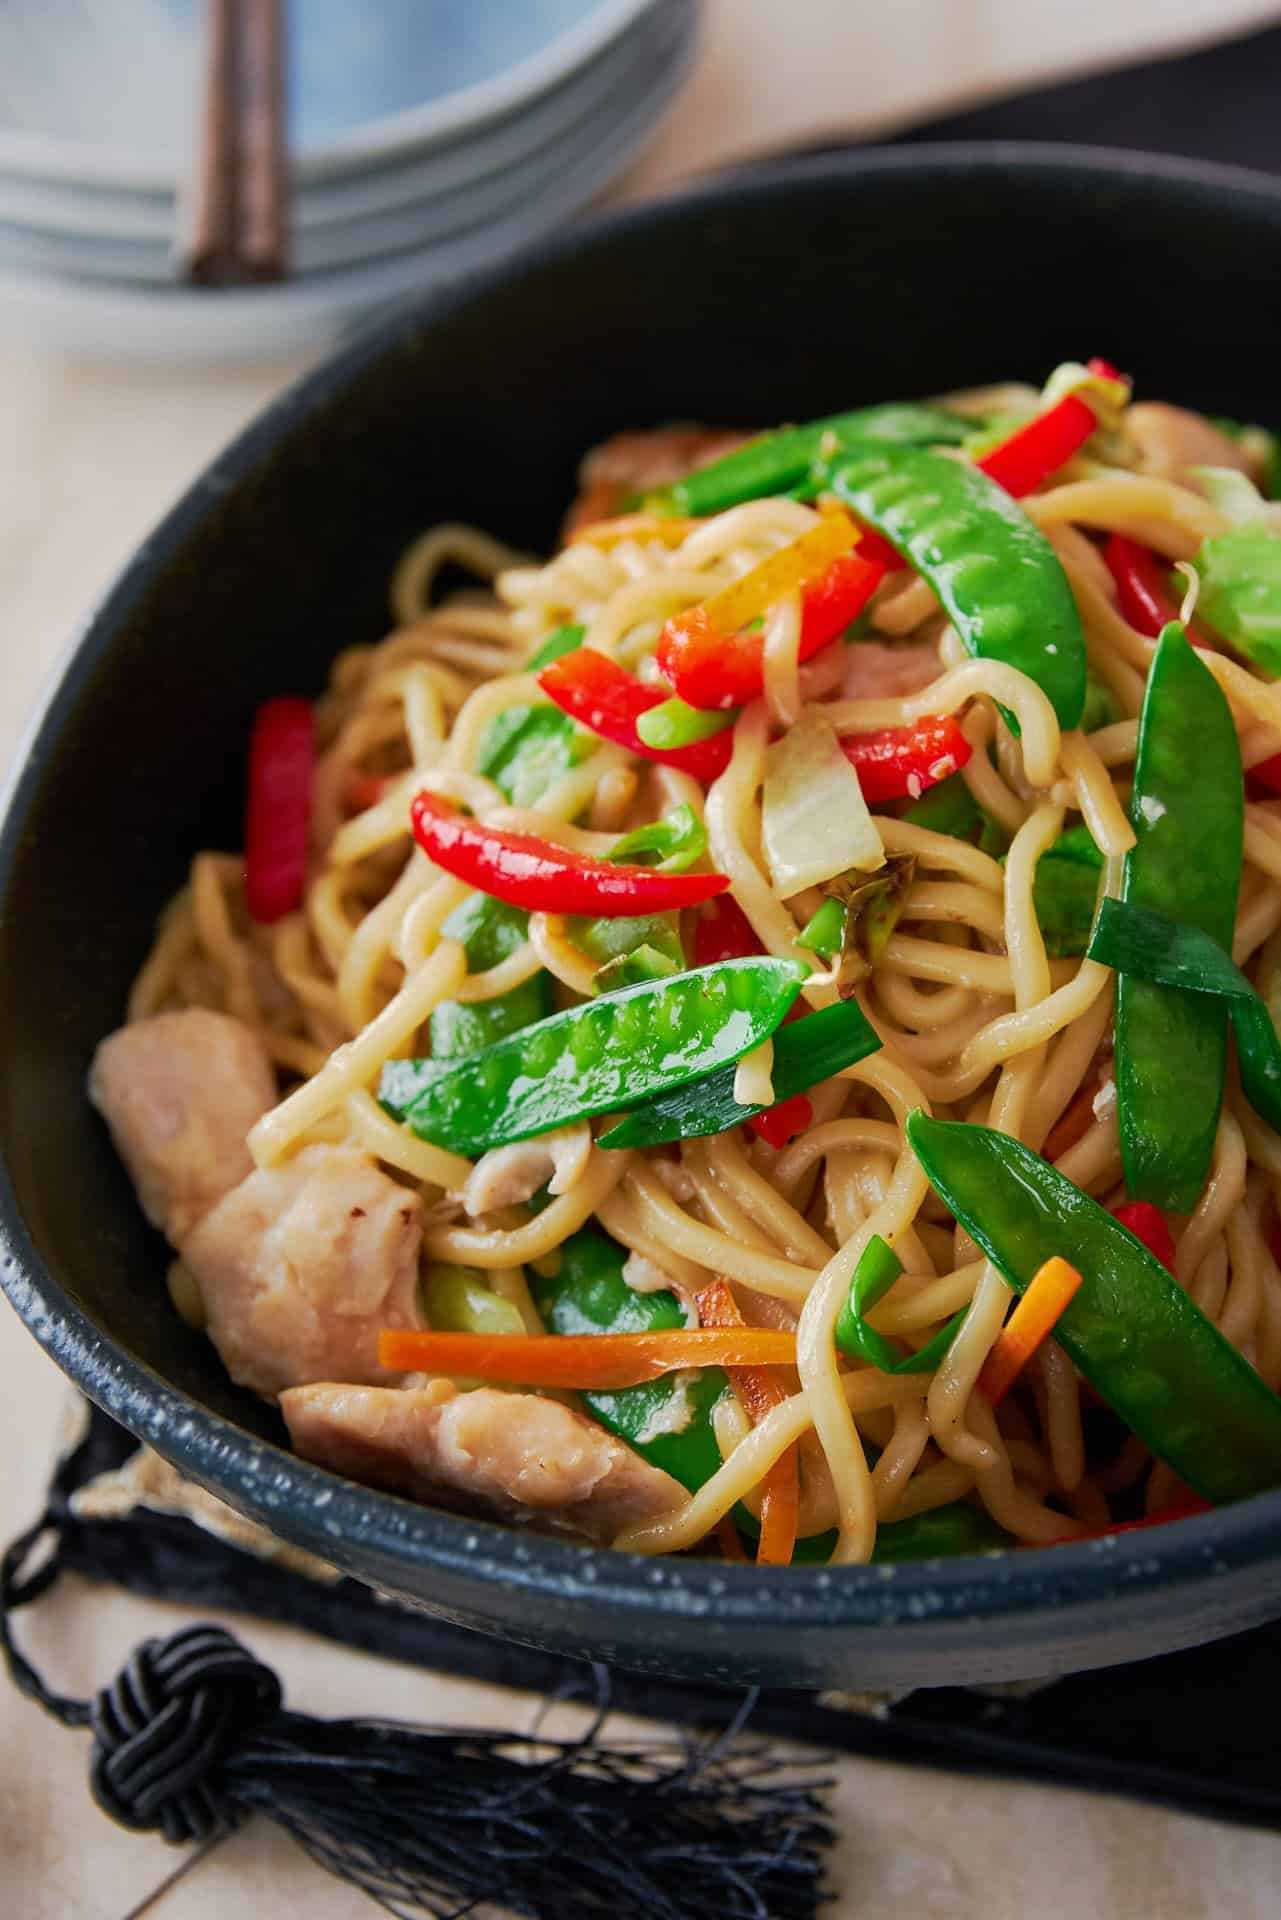 With big chunks of juicy chicken and a rainbow medley of vegetables this Chicken Chow Mein makes for a deliciously balanced one pan meal.